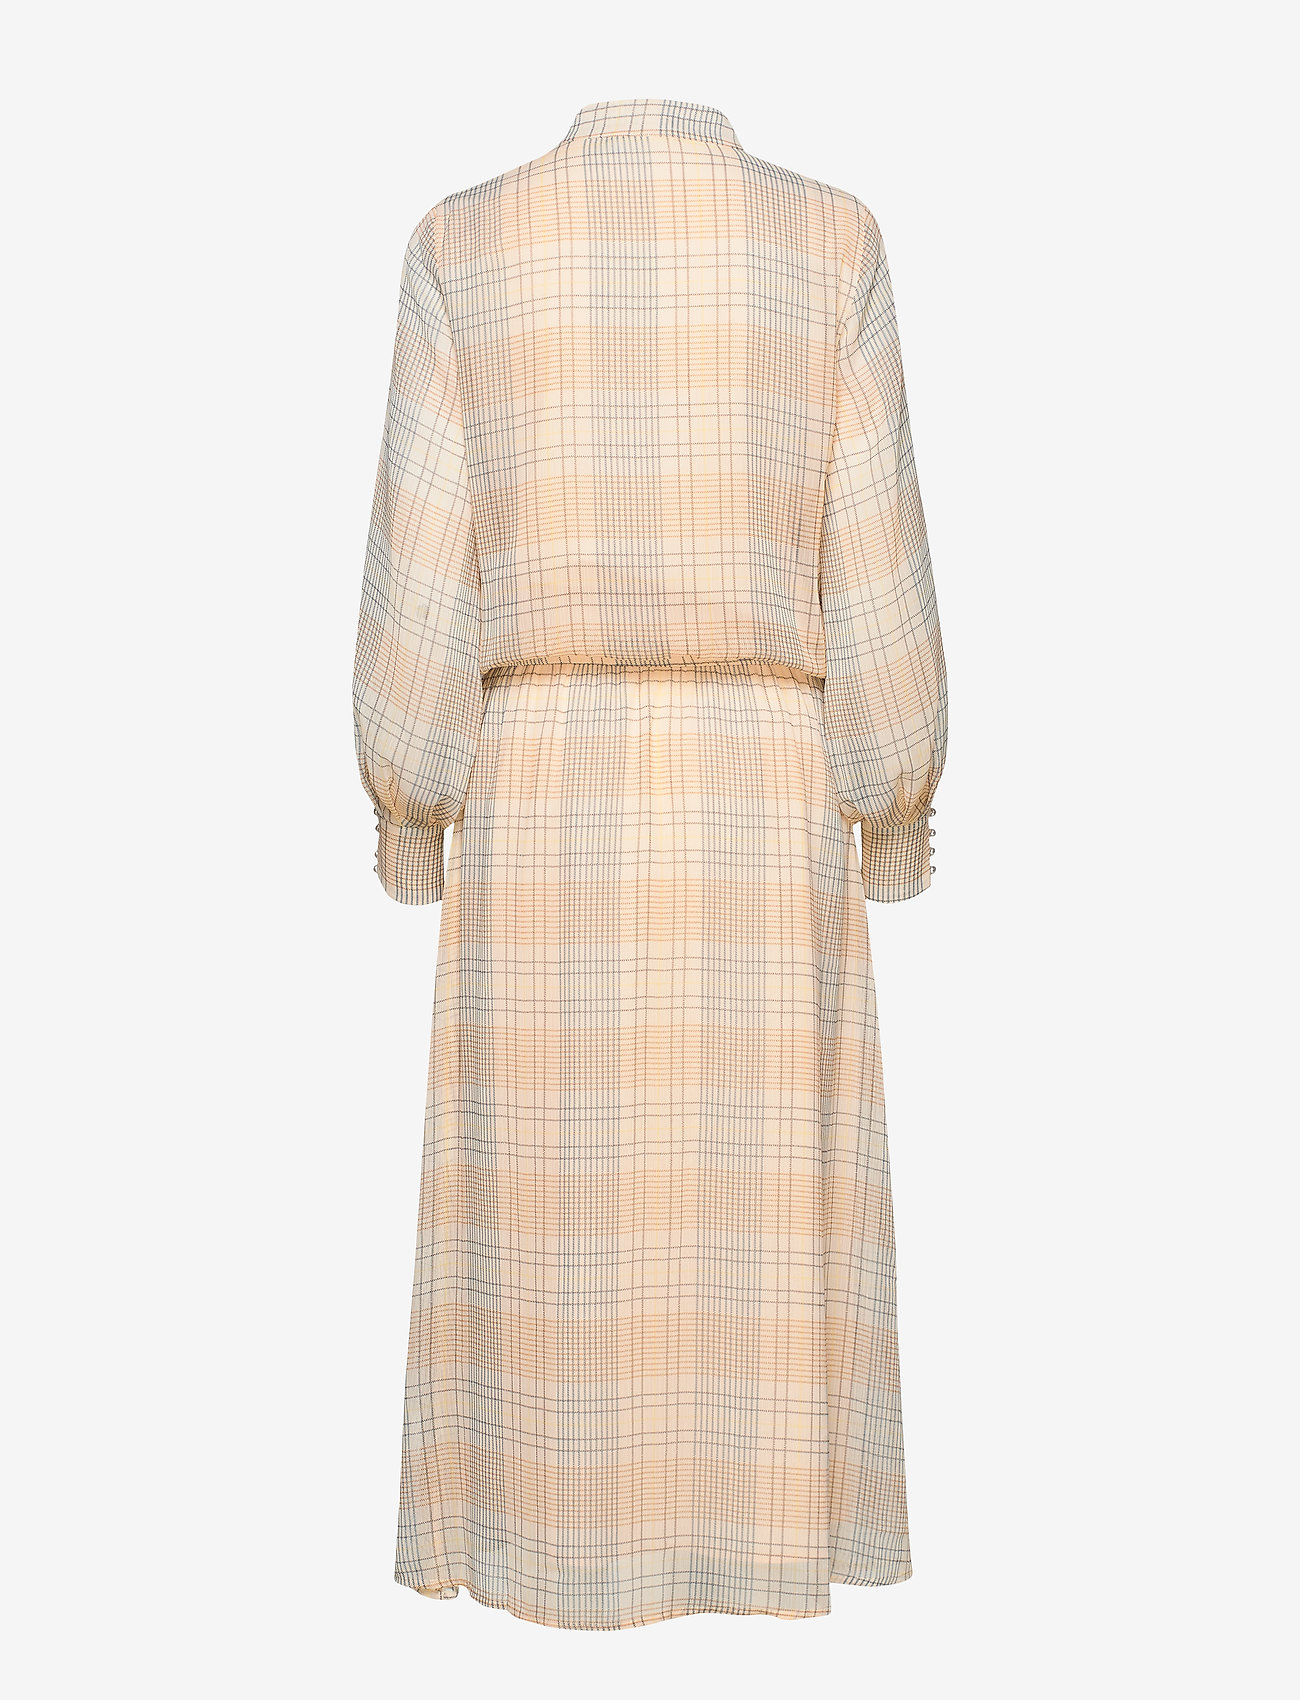 Coster Copenhagen - Dress long sleeved in check print - shirt dresses - check print